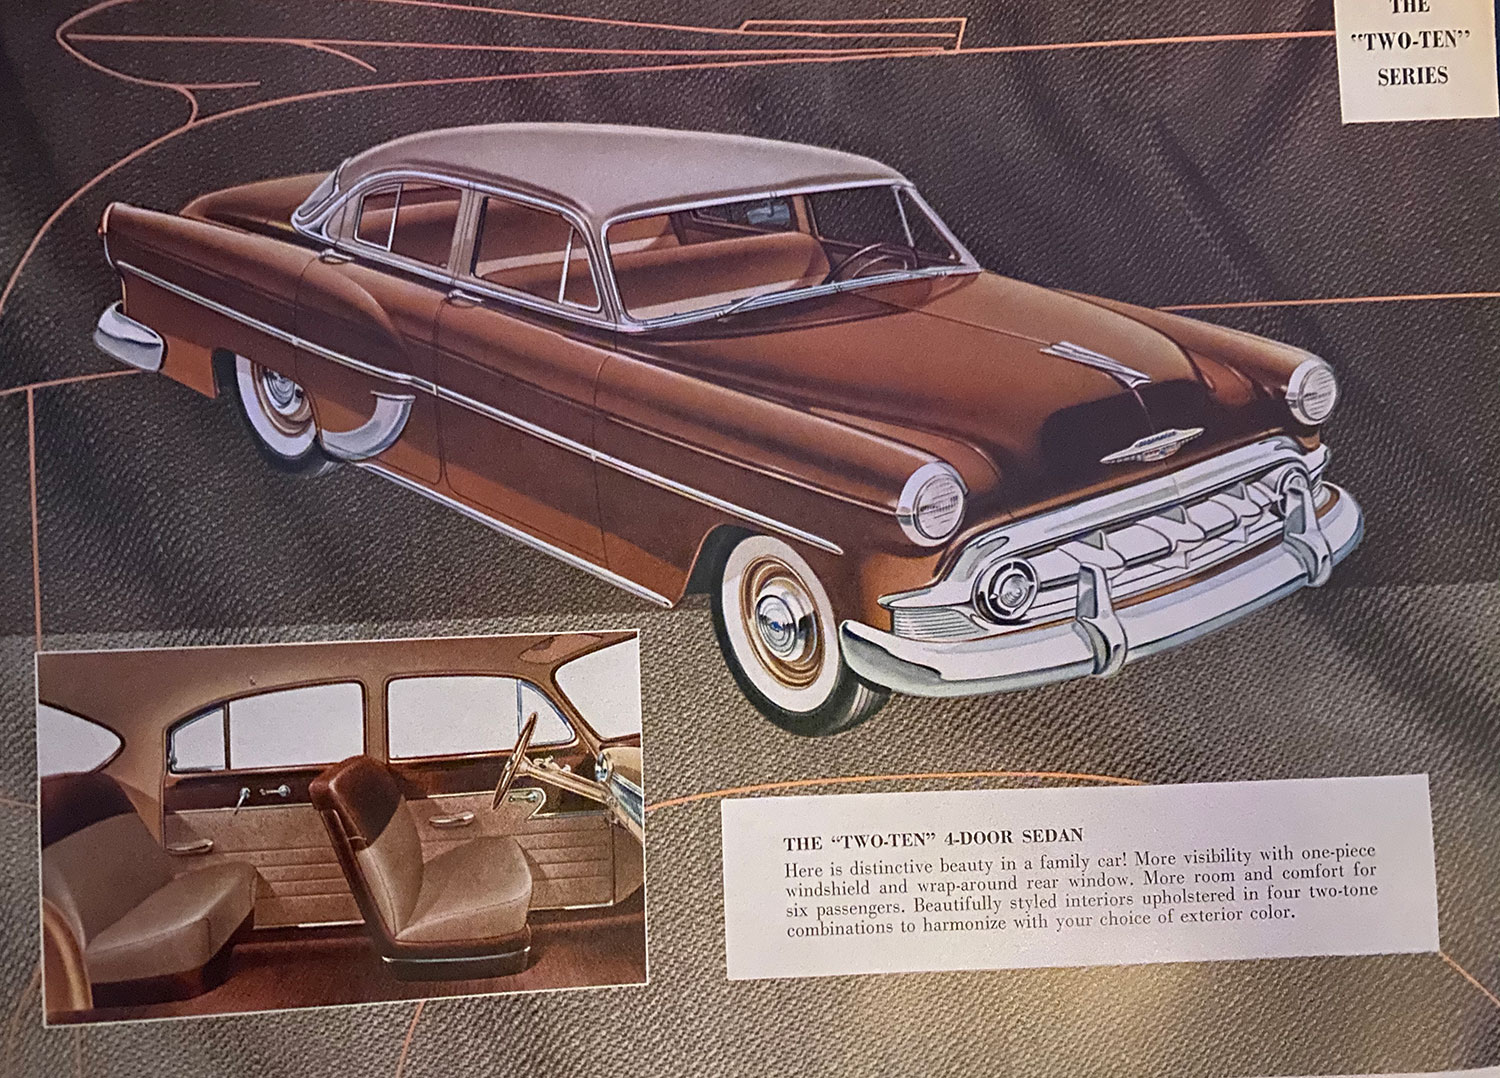 1953 Chevy sales brochure photo two ten series